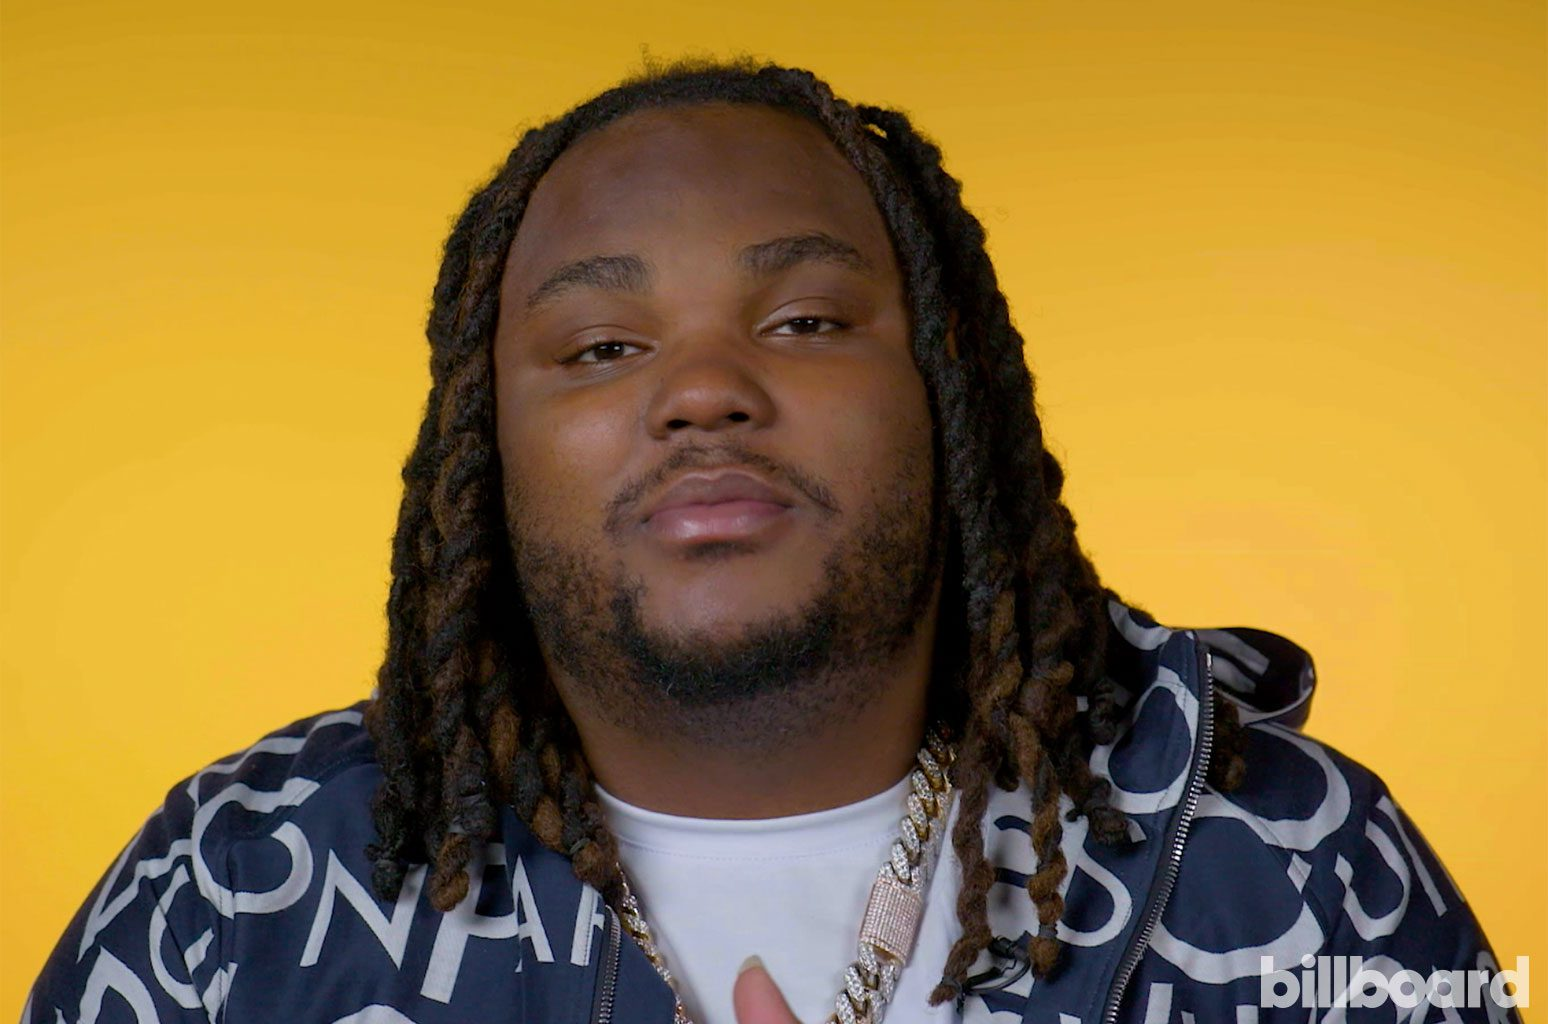 Tee Grizzley's Car Was Shot At And His Manager Killed